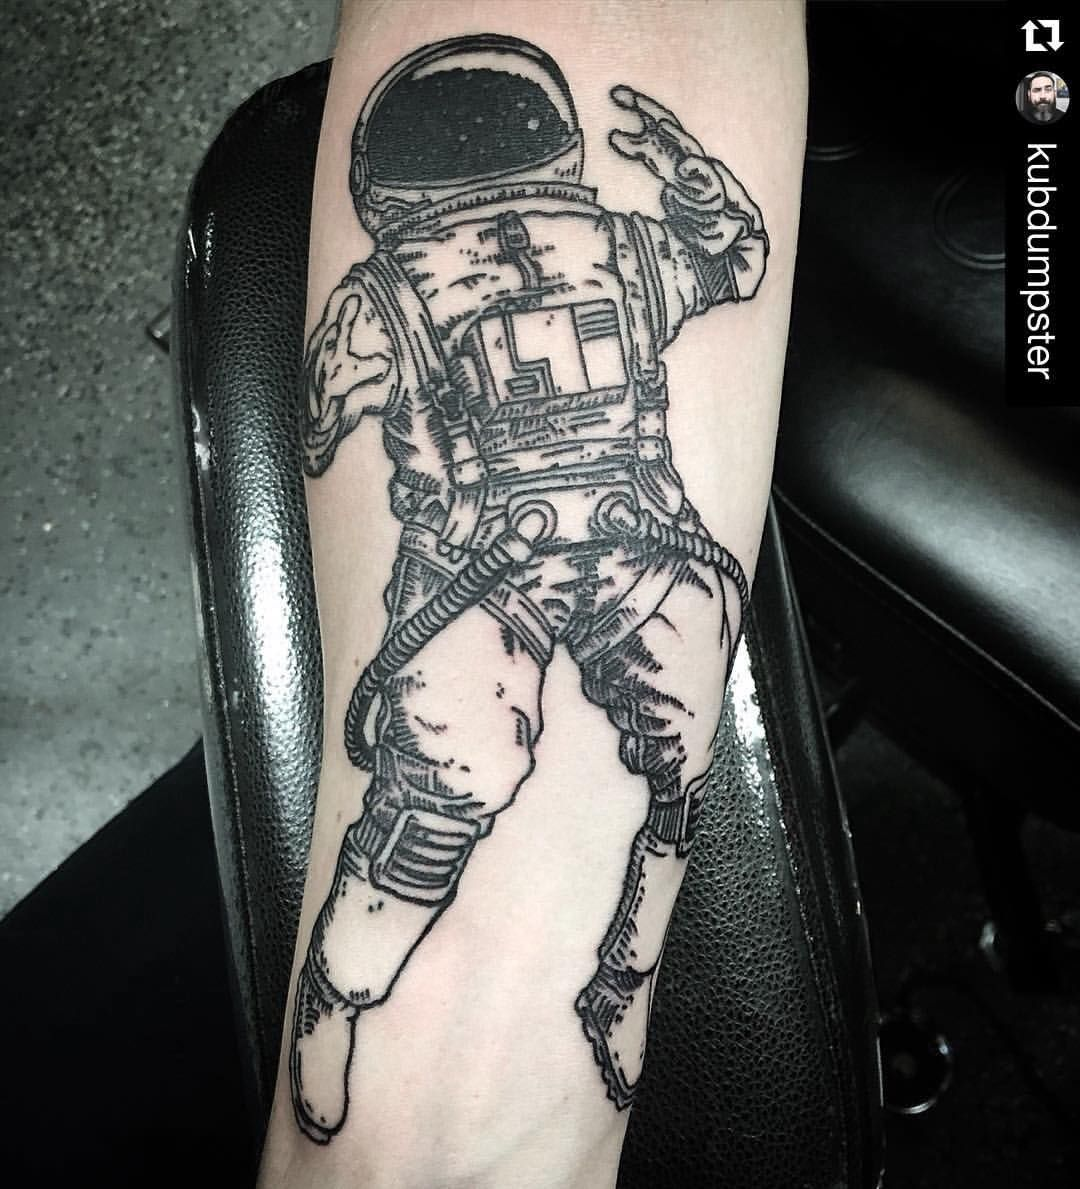 Watercolor tattoo artists in houston texas -  Repost From Our Tattoo Artist Travis Kubdumpster Astronaut From